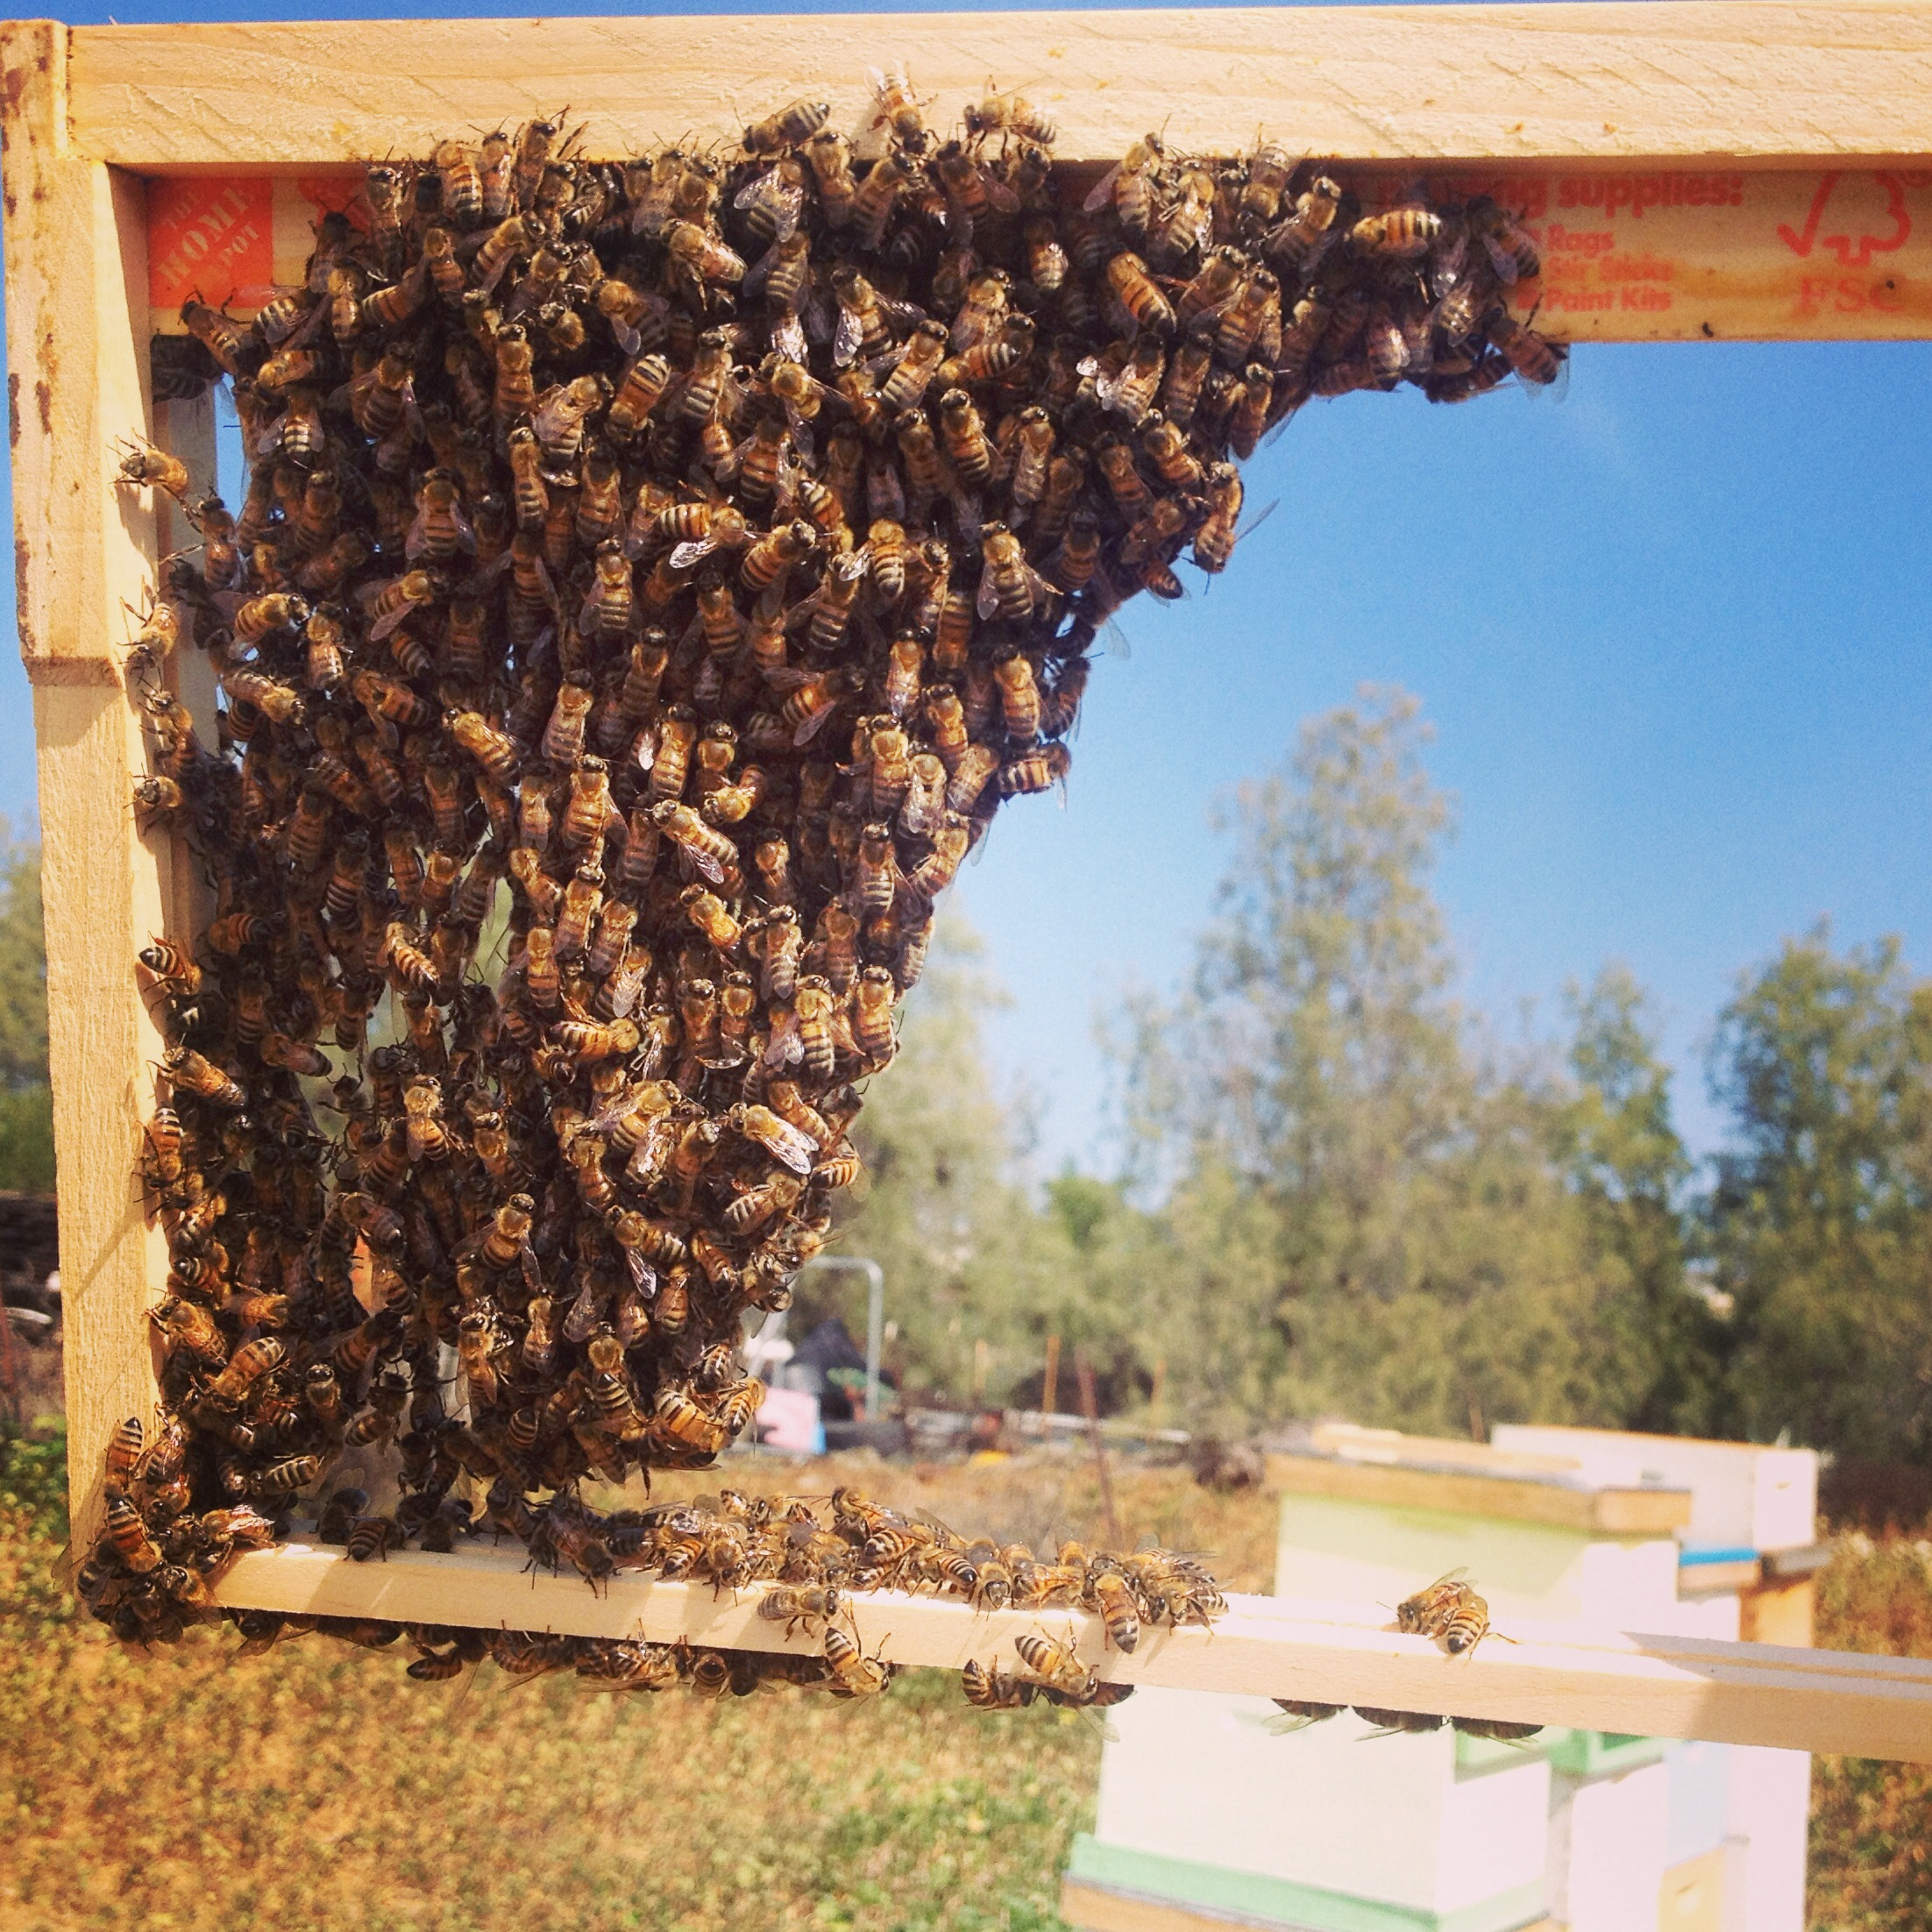 beekeeping like a langstroth vs top bar hive